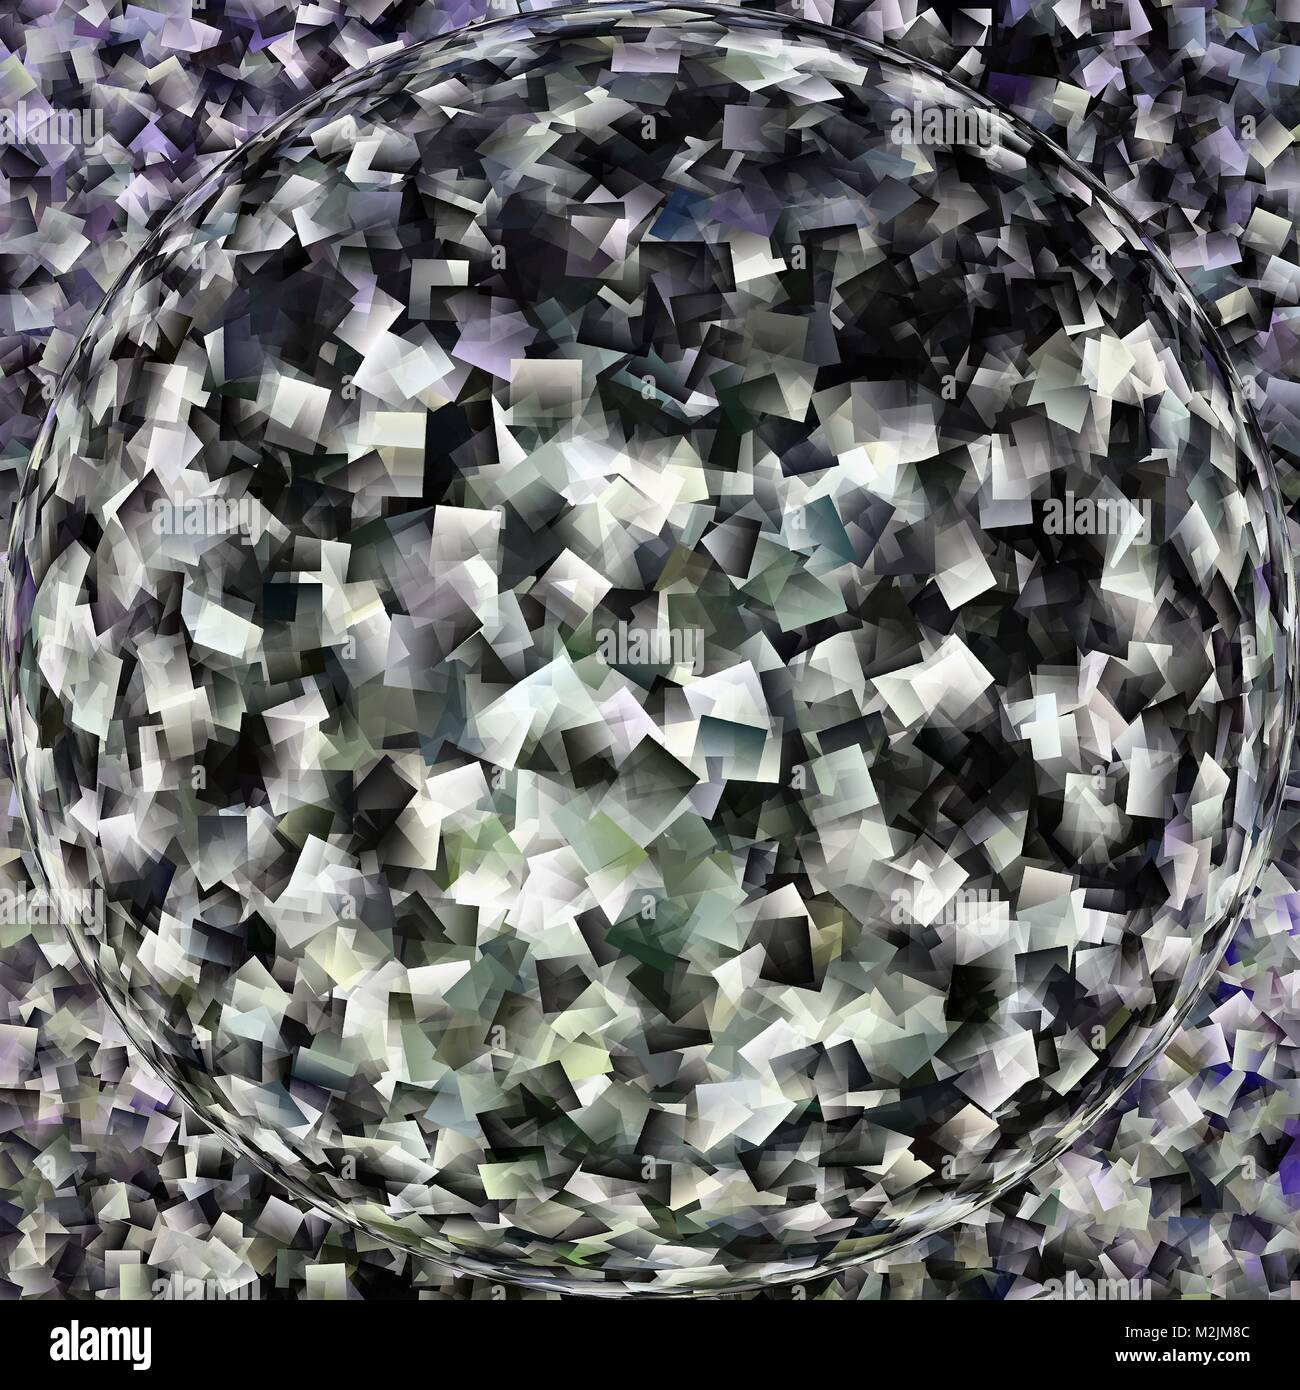 Abstract grey and black warped fractal sphere background - Stock Image